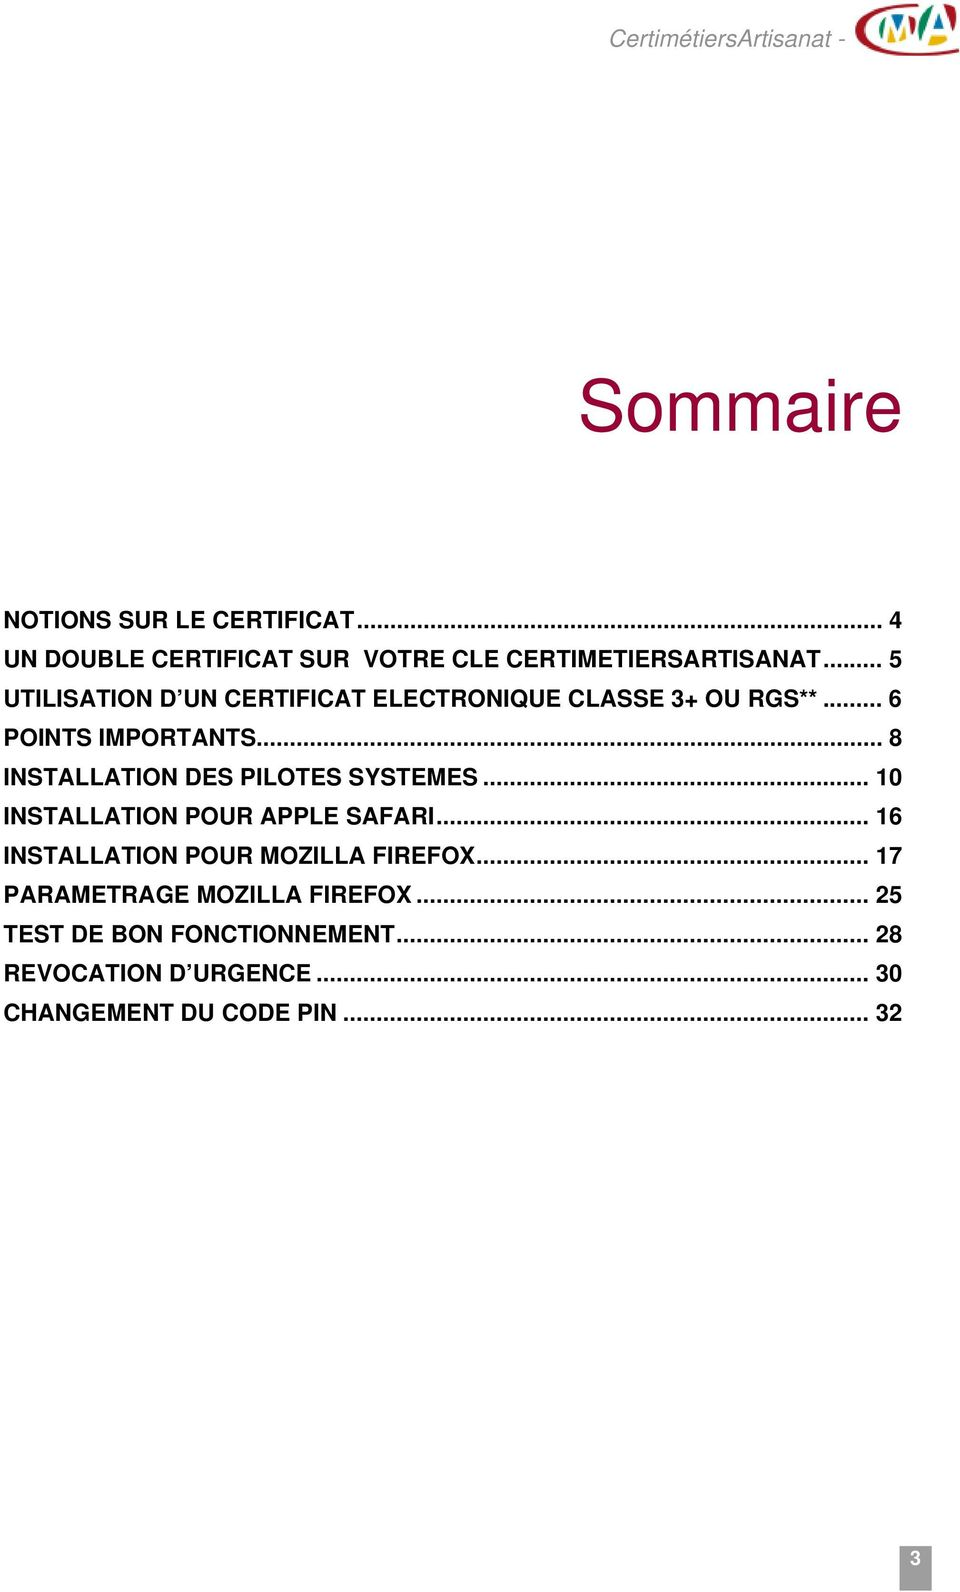 .. 5 UTILISATION D UN CERTIFICAT ELECTRONIQUE CLASSE 3+ OU RGS**... 6 POINTS IMPORTANTS.